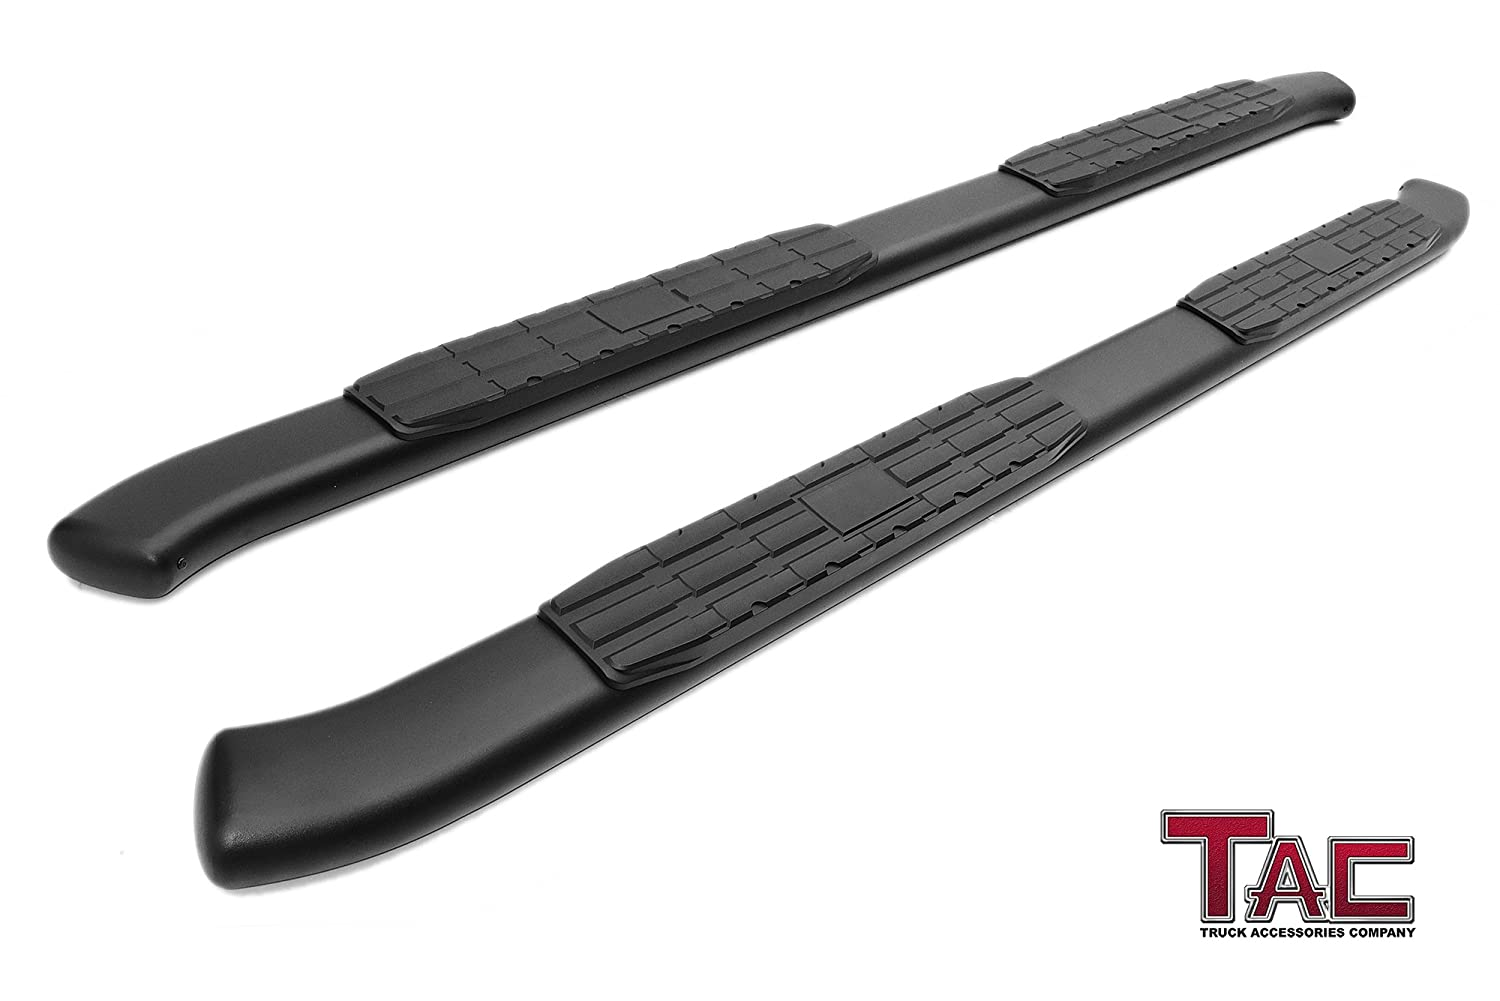 TAC 4.25' PNC Oval Bend Side Steps for 2007-2018 Toyota Tundra Double Cab Pickup Truck Black Side Bars Nerf Bars Running Boards Rock Panel Off Road Exterior Accessories (2 Pieces Running Boards)